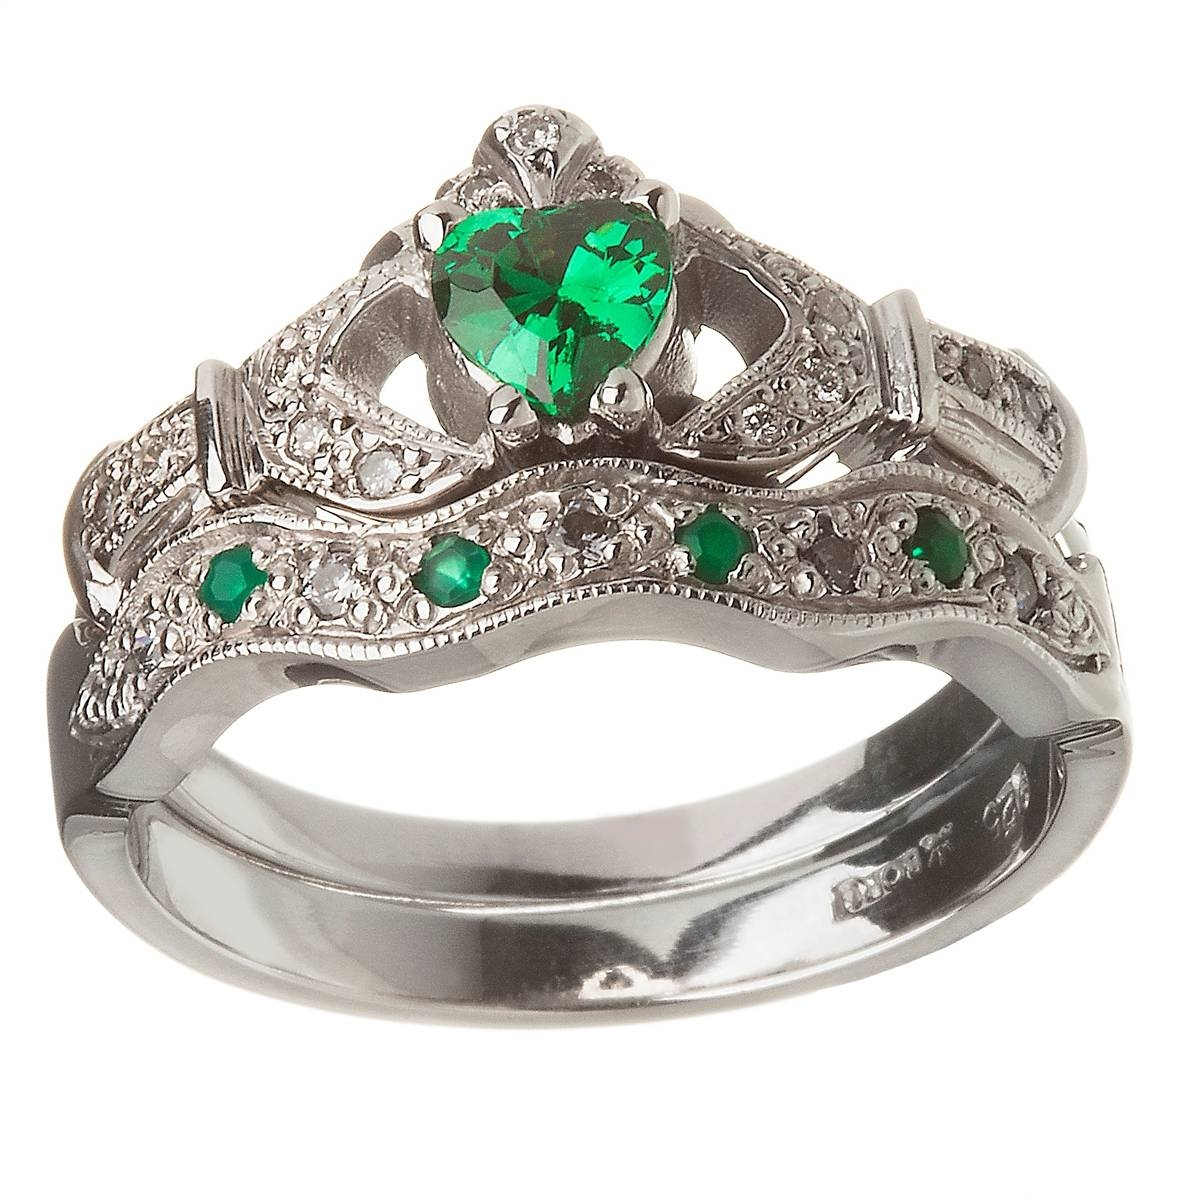 14K White Gold Emerald Set Heart Claddagh Ring & Wedding Ring Set With Claddagh Diamond Engagement Rings (View 1 of 15)